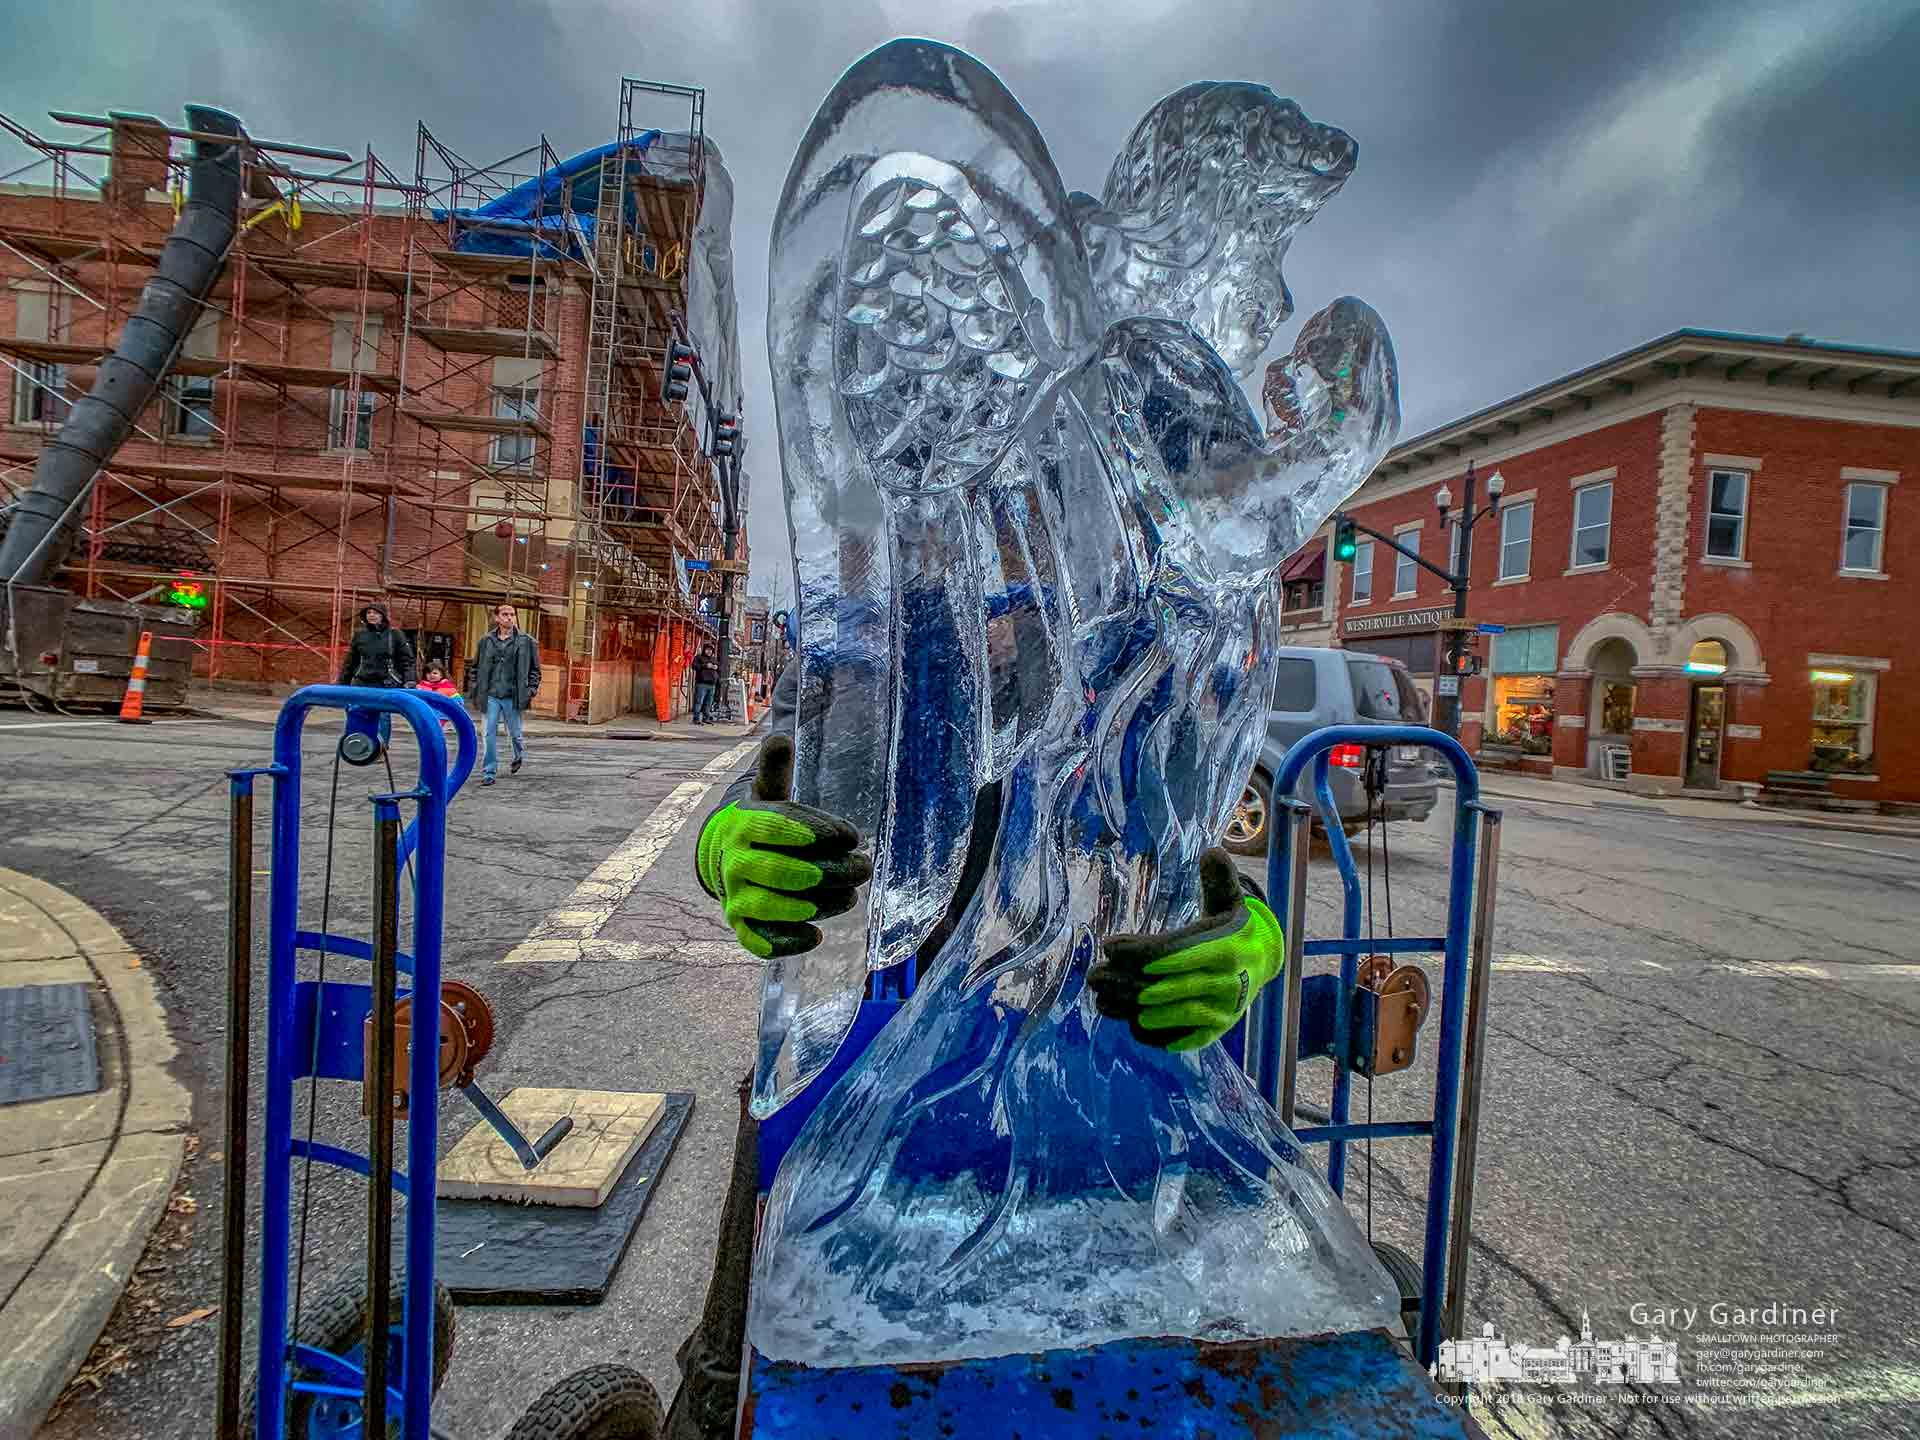 An angel ice sculpture is transferred to a dolly on its way to a display of frozen statues in Uptown Westerville the weekend before Christmas. My Final Photo for Dec. 21, 2018.